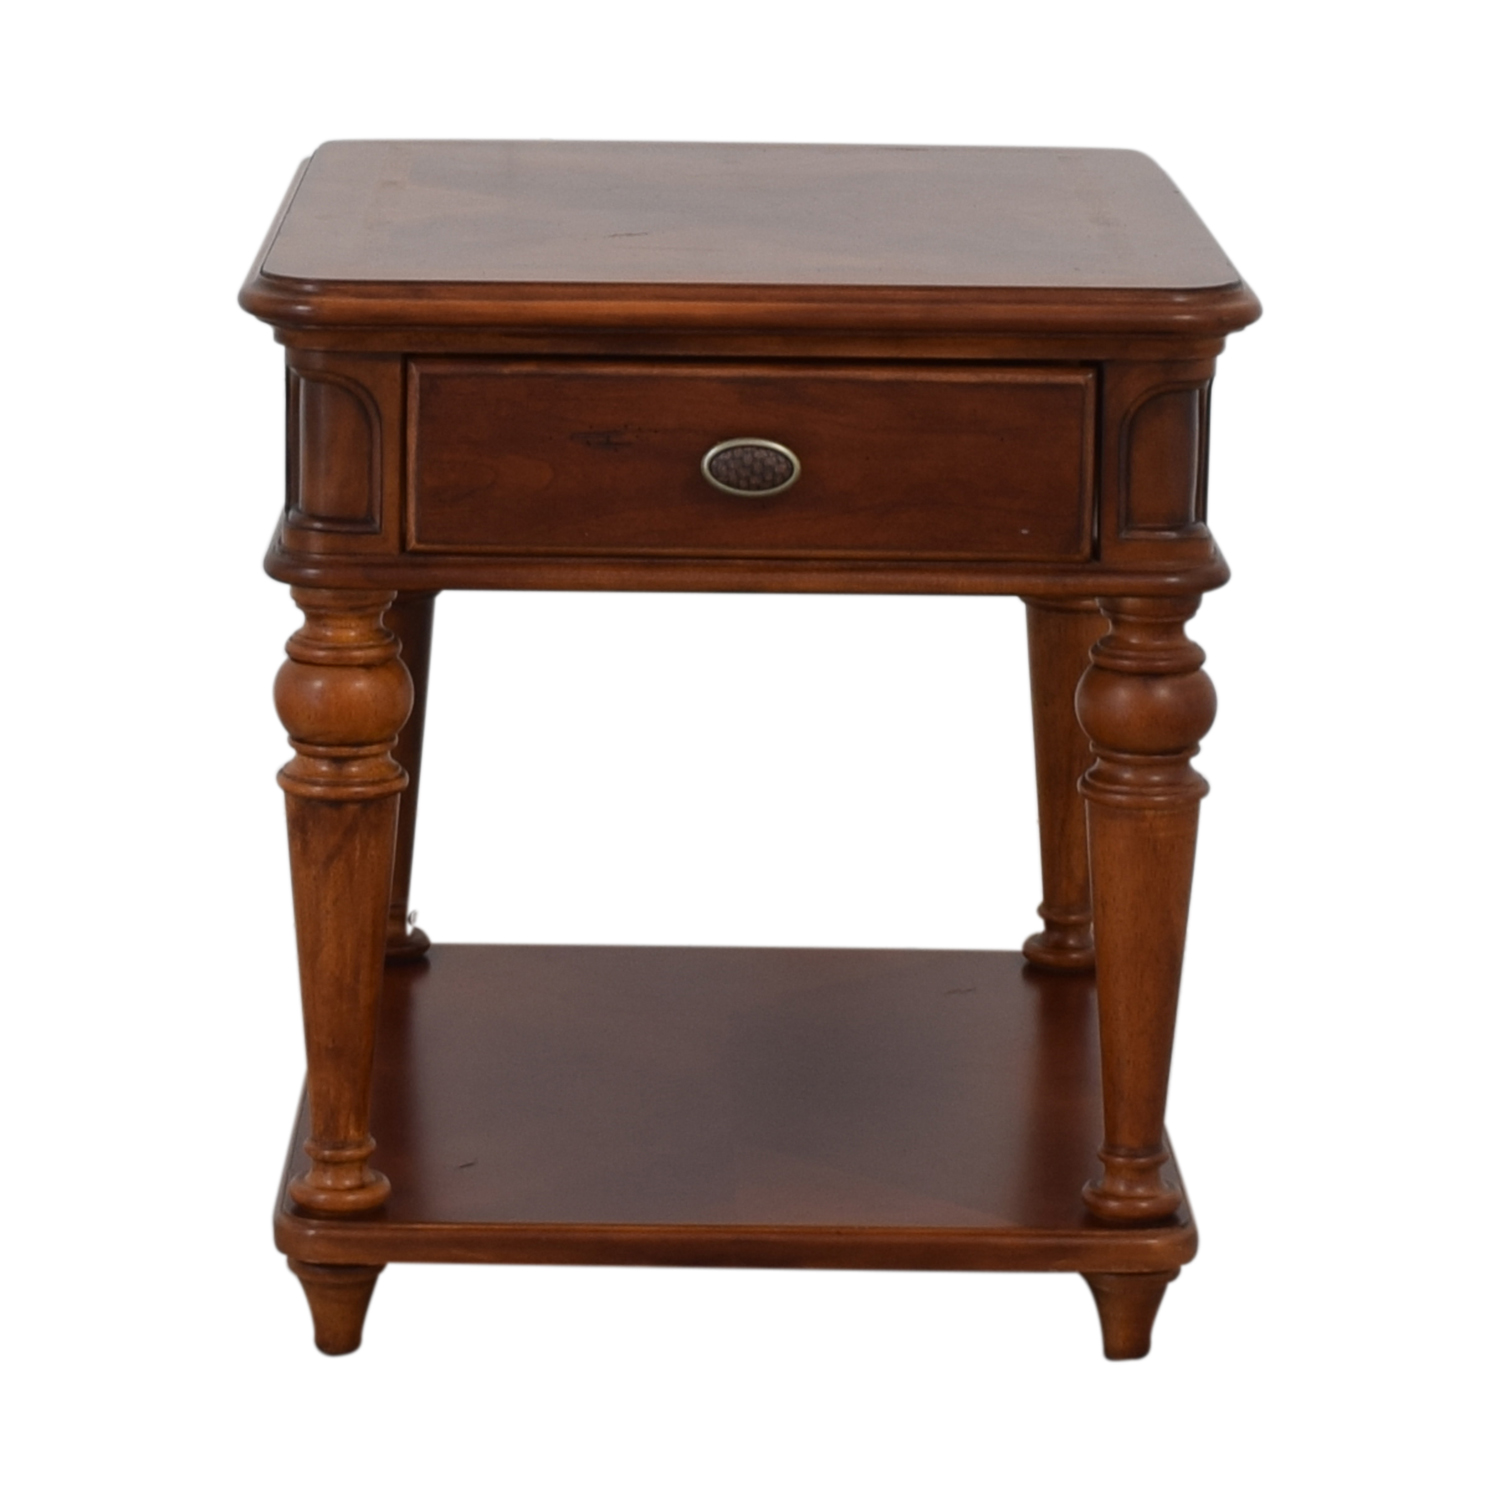 Raymour & Flanigan Raymour & Flanigan Brownstone Single Drawer End Table End Tables